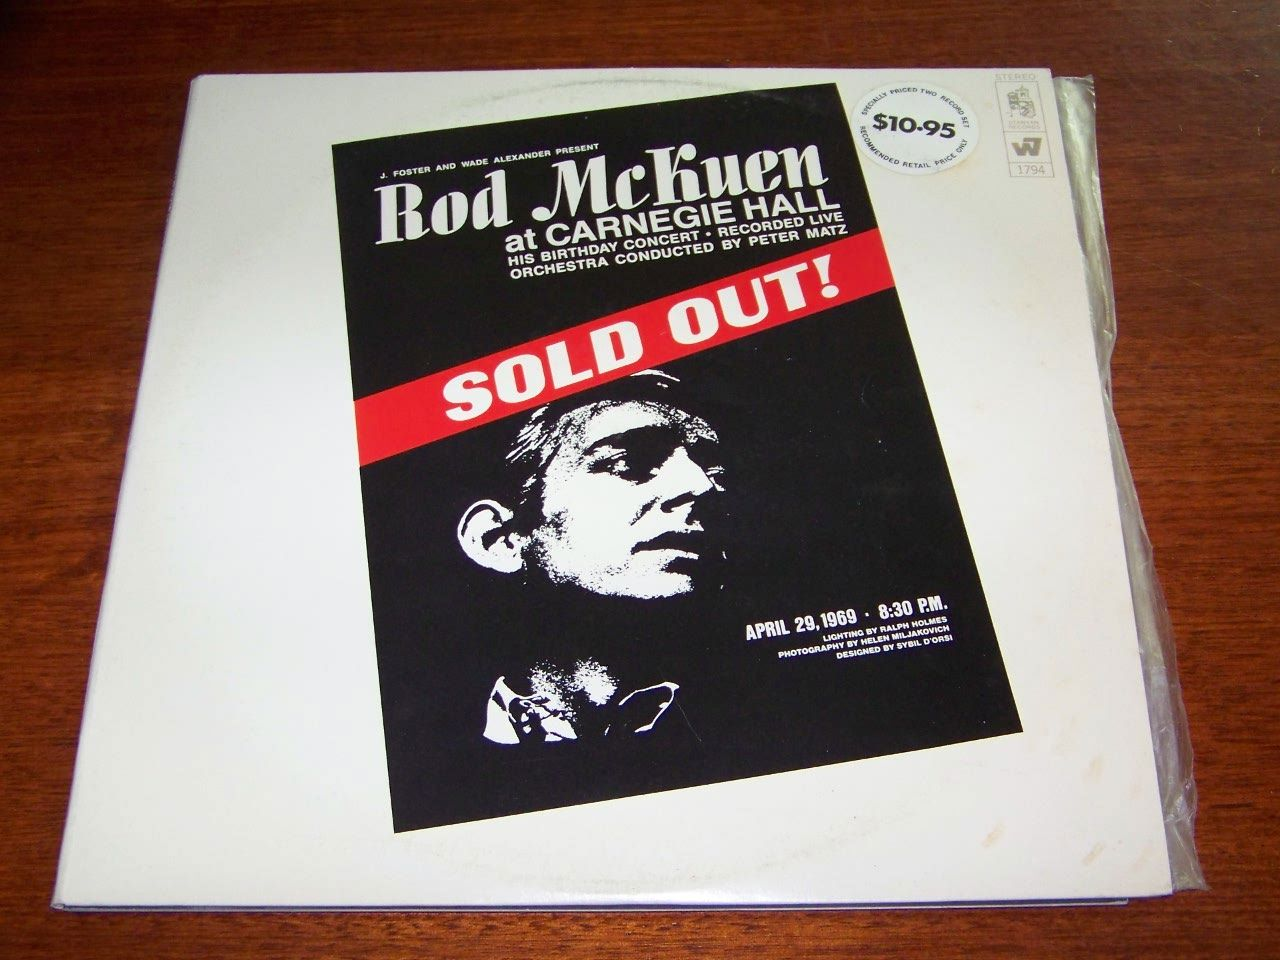 Live-at-Carnegie-Hall-Rod-McKuen-2LP-Set-1969-LP-Excellent-Condition